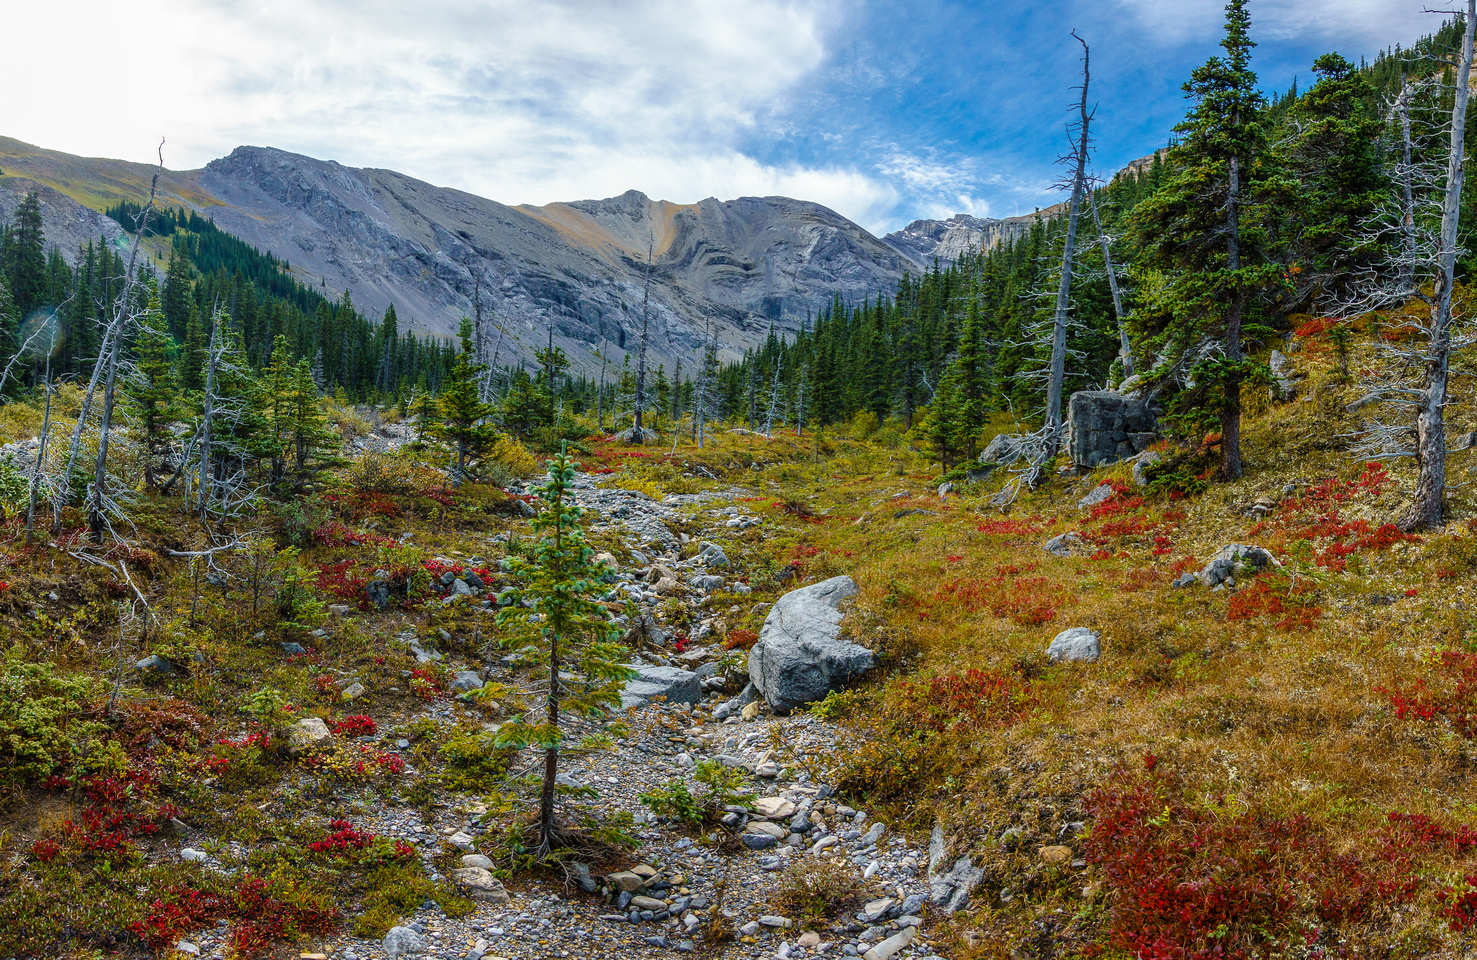 A beautiful valley with fall colors to the north of Zombie Peak.